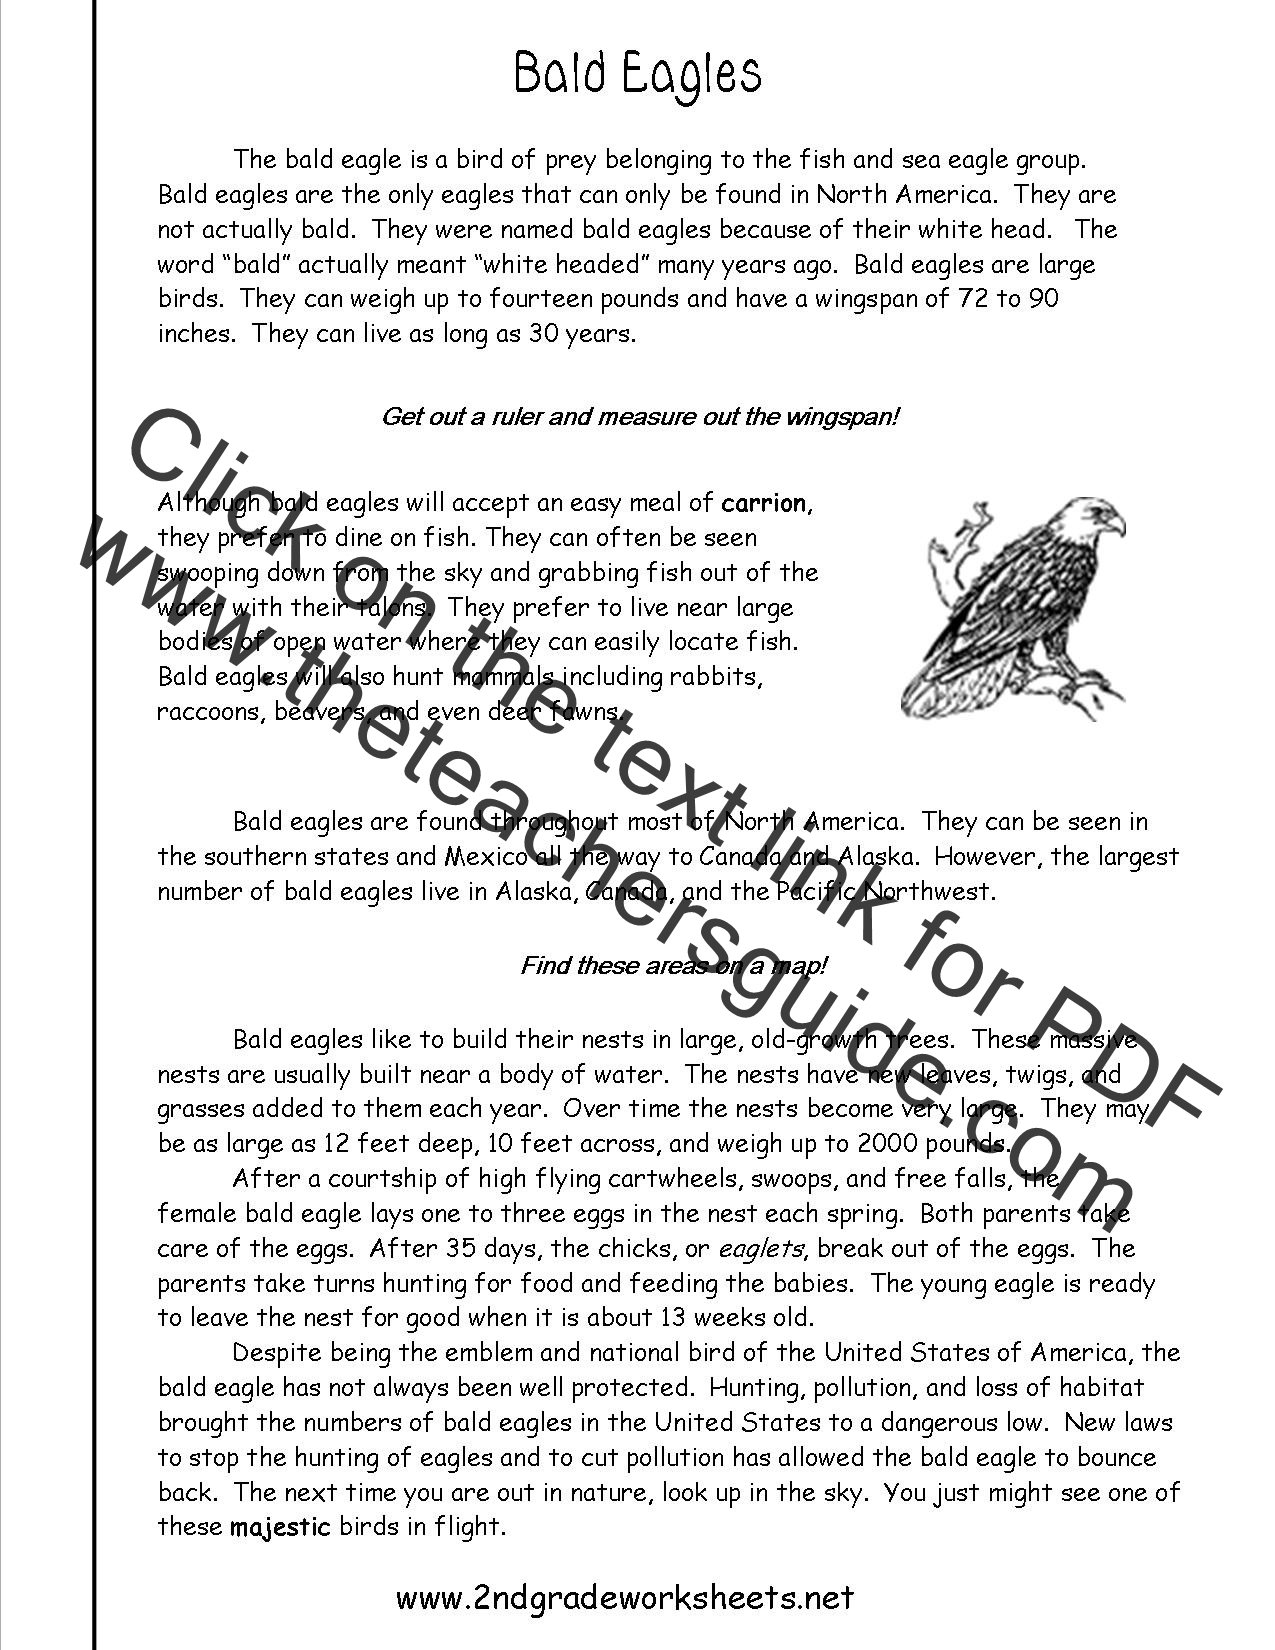 Worksheets Reading Informational Text Worksheets